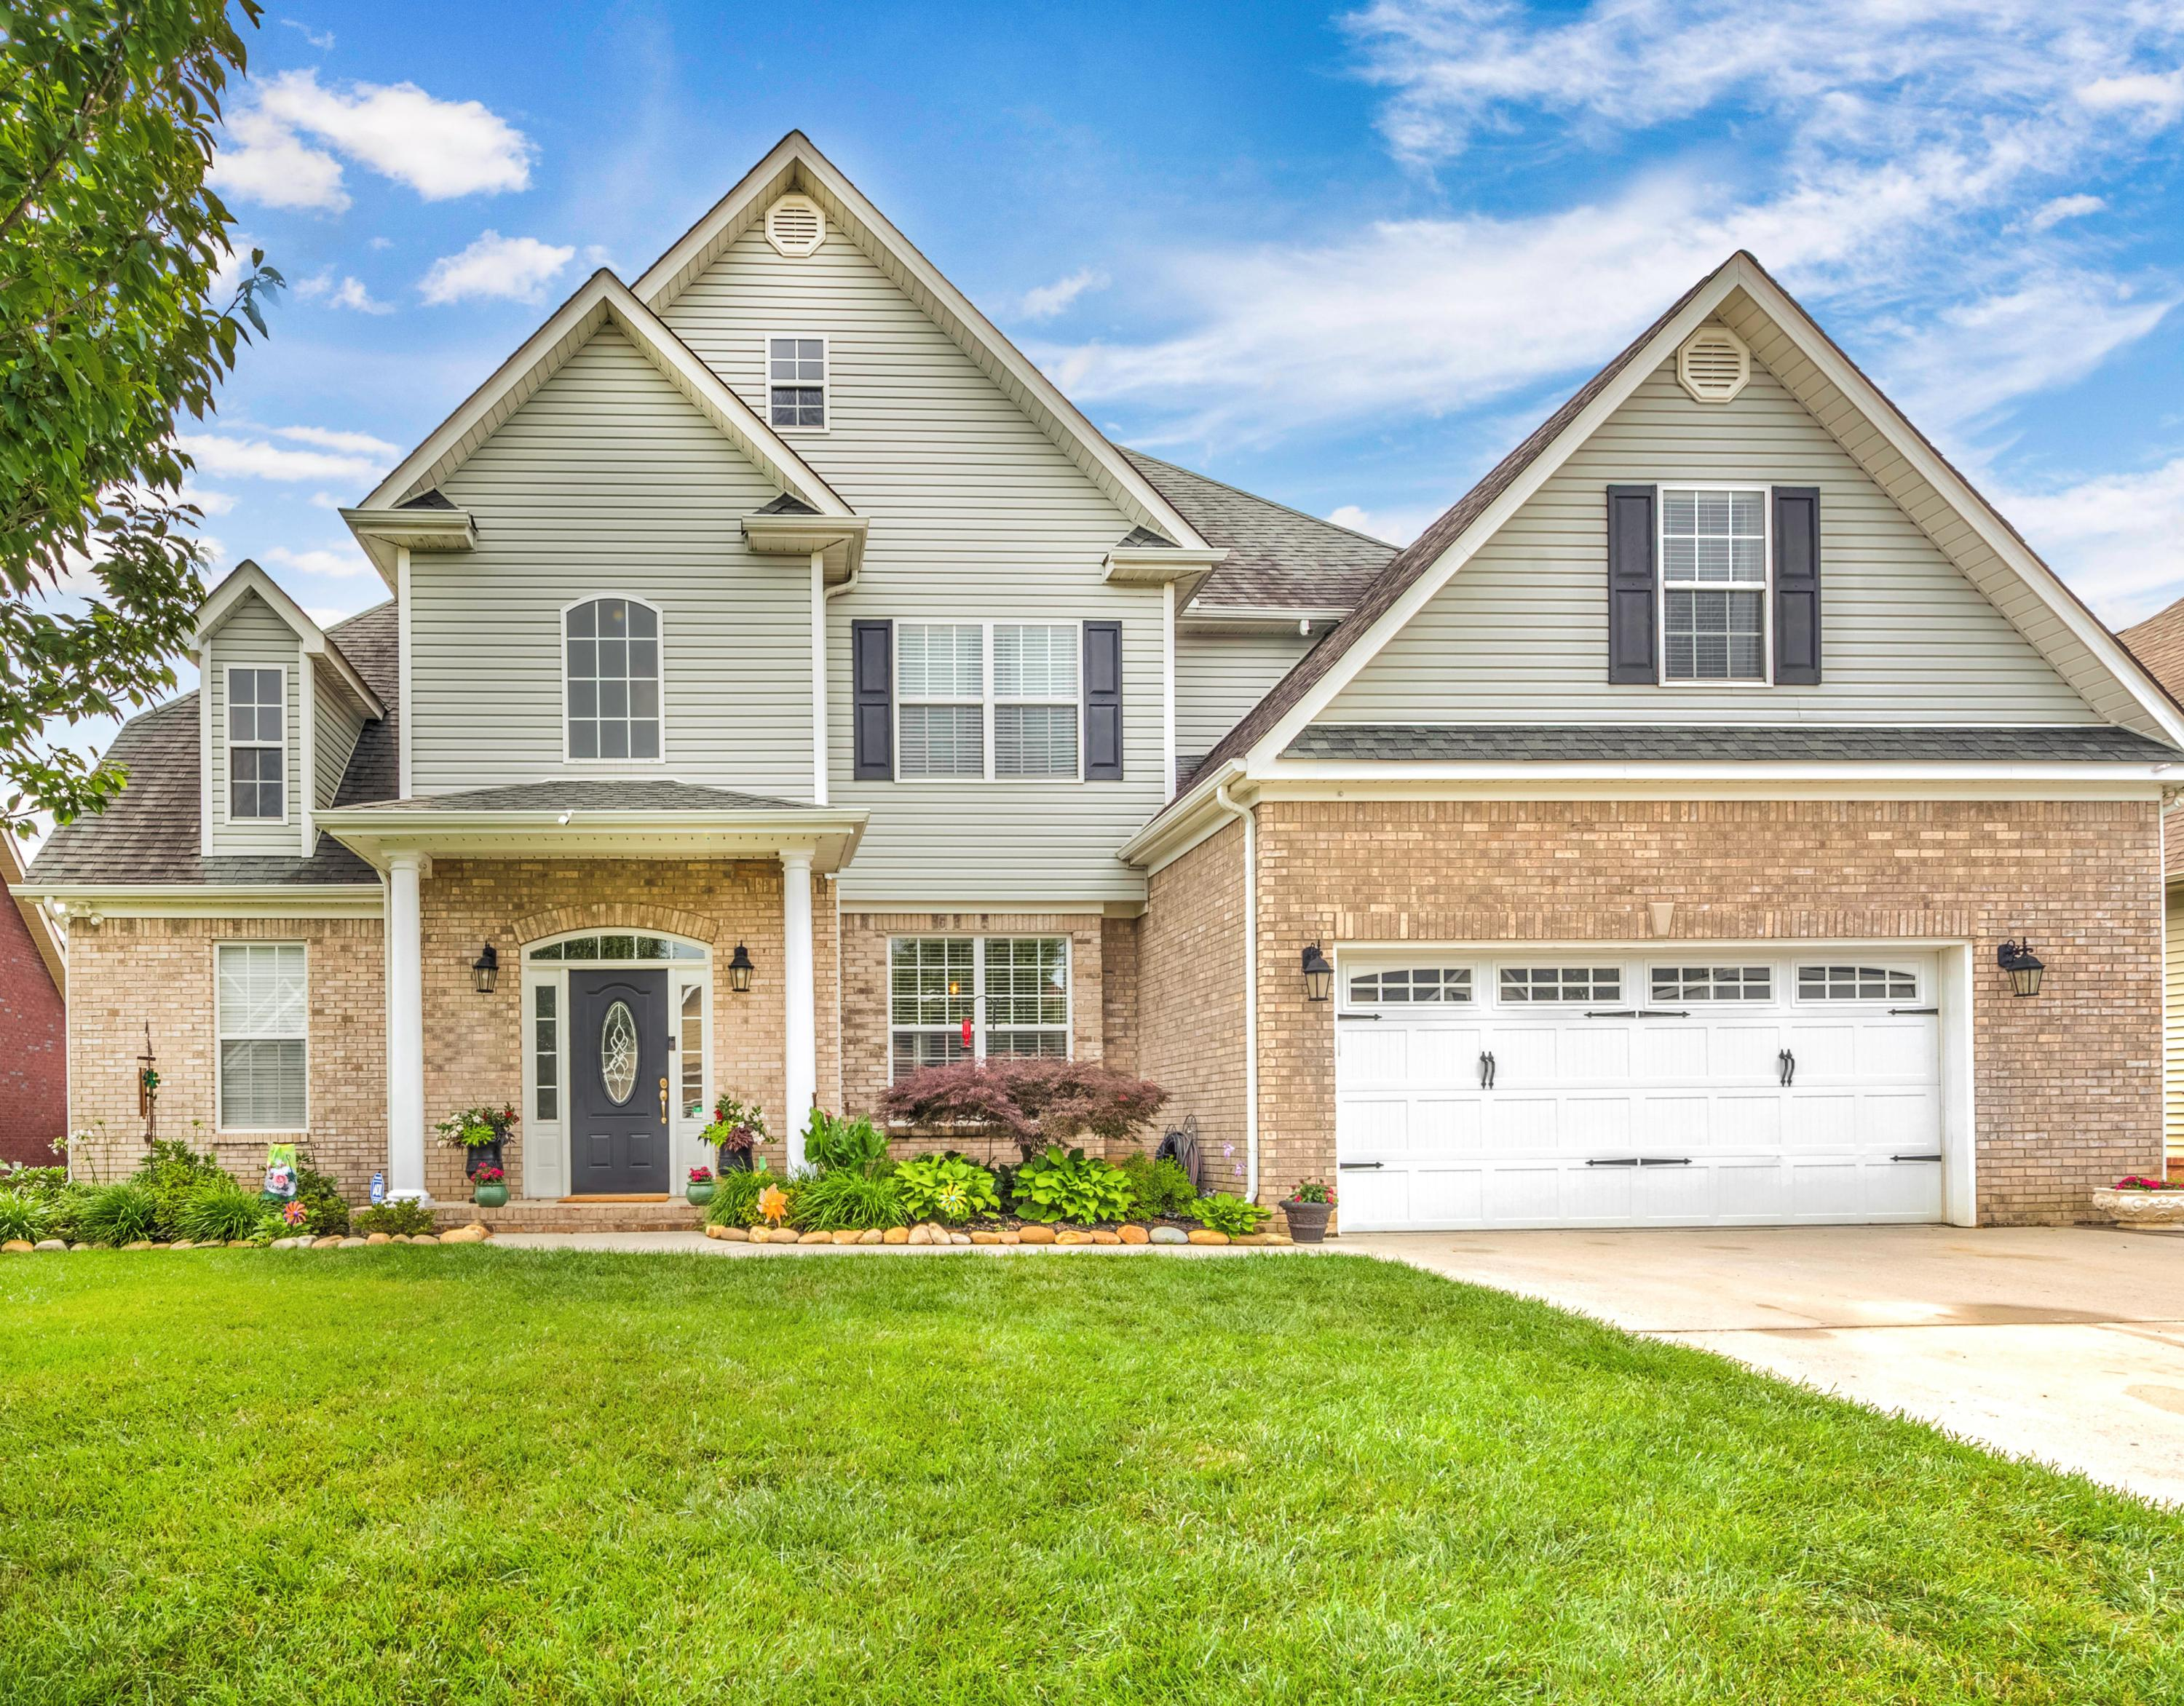 2630 Nicholas View Lane, Knoxville, Tennessee 37931, 4 Bedrooms Bedrooms, ,3 BathroomsBathrooms,Single Family,For Sale,Nicholas View,1121673